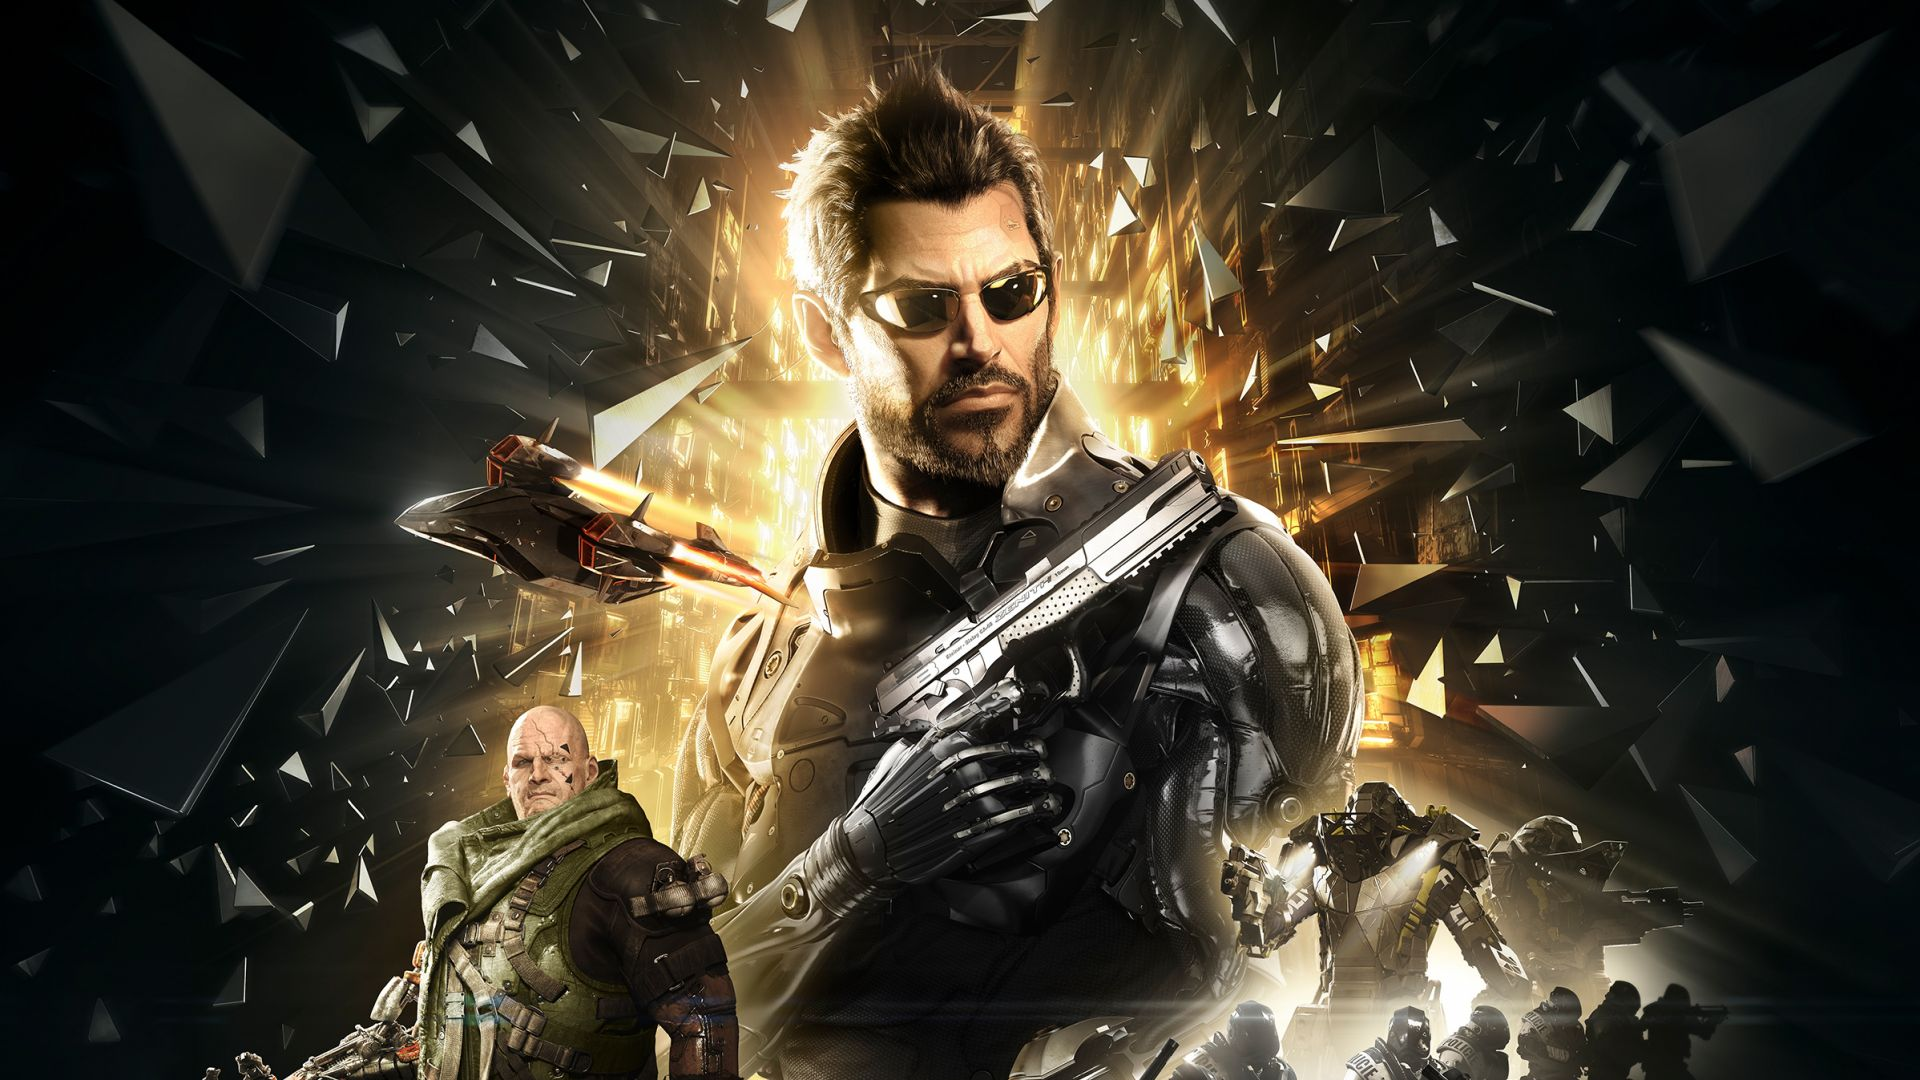 Deus Ex: Mankind Divided, Лучшие игры, игра, киберпанк, фантастика, ПК, PC, Xbox one, PS4, Deus Ex: Mankind Divided, Best Games 2015, game, cyberpunk, sci-fi, PC, Xbox one, PS4 (horizontal)